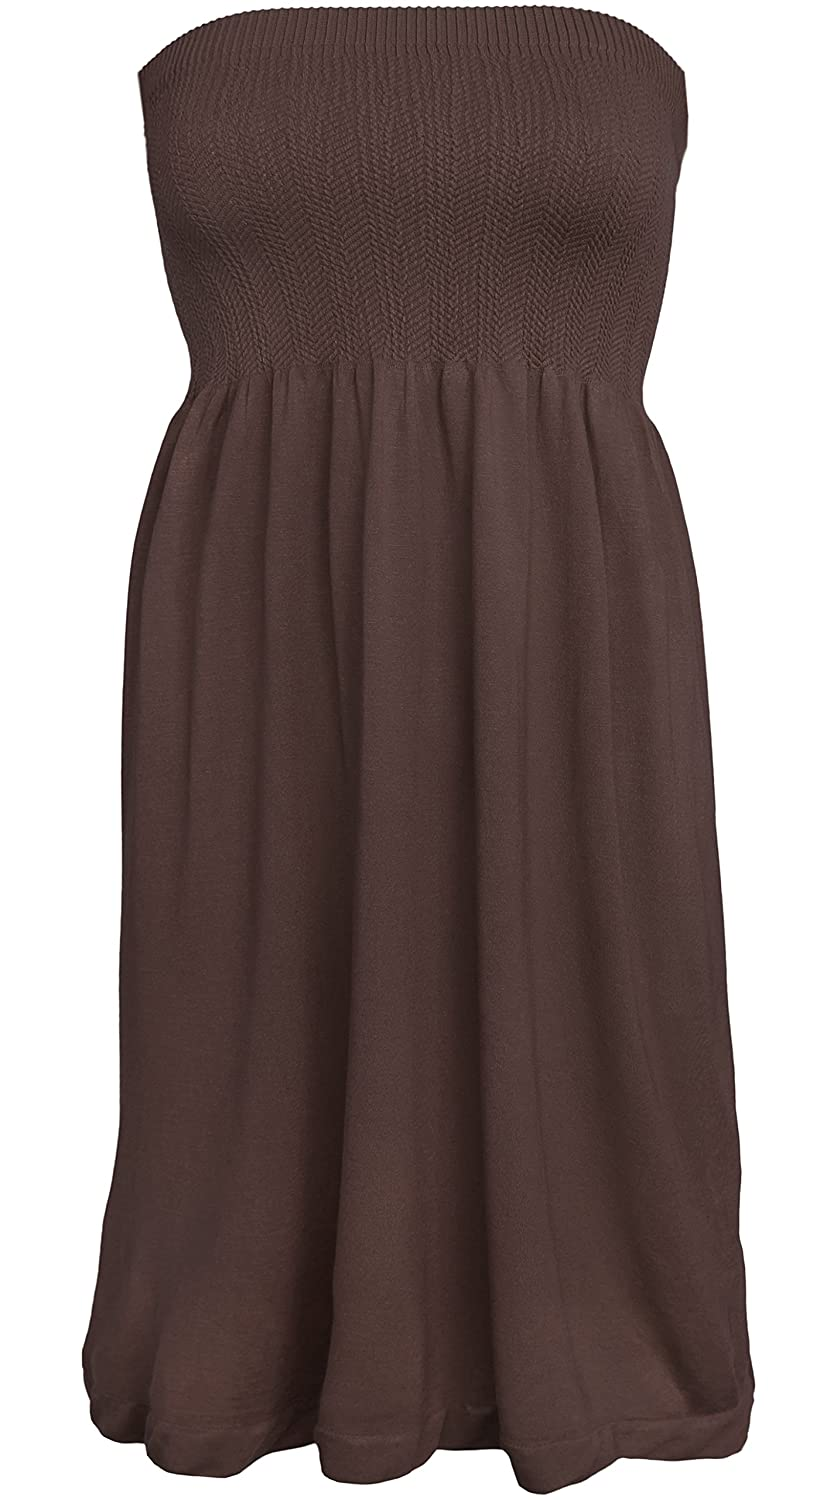 2211df6e4fe Casual Lounge Strapless Fit   Flare Smocking Pull On Tube Dress Knee Length  - Approximately 27.5 inch long unstretched. Top - 21 inch in circumference  ...